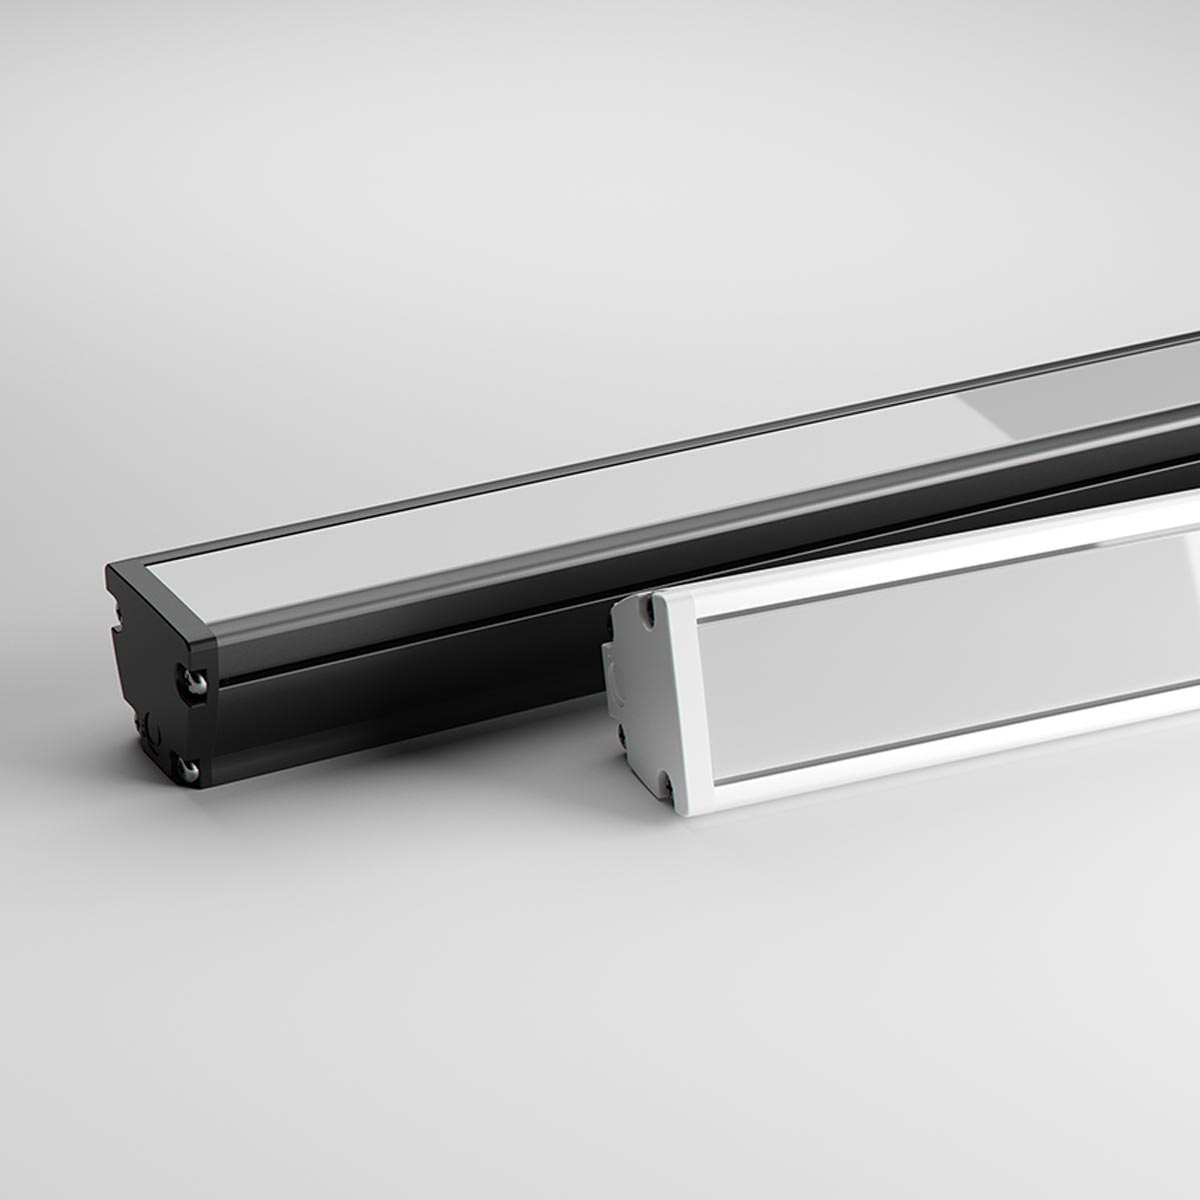 Max Mini UG - Linear Medium Power Luminaire with Homogeneous Light Output (28W or 40W)